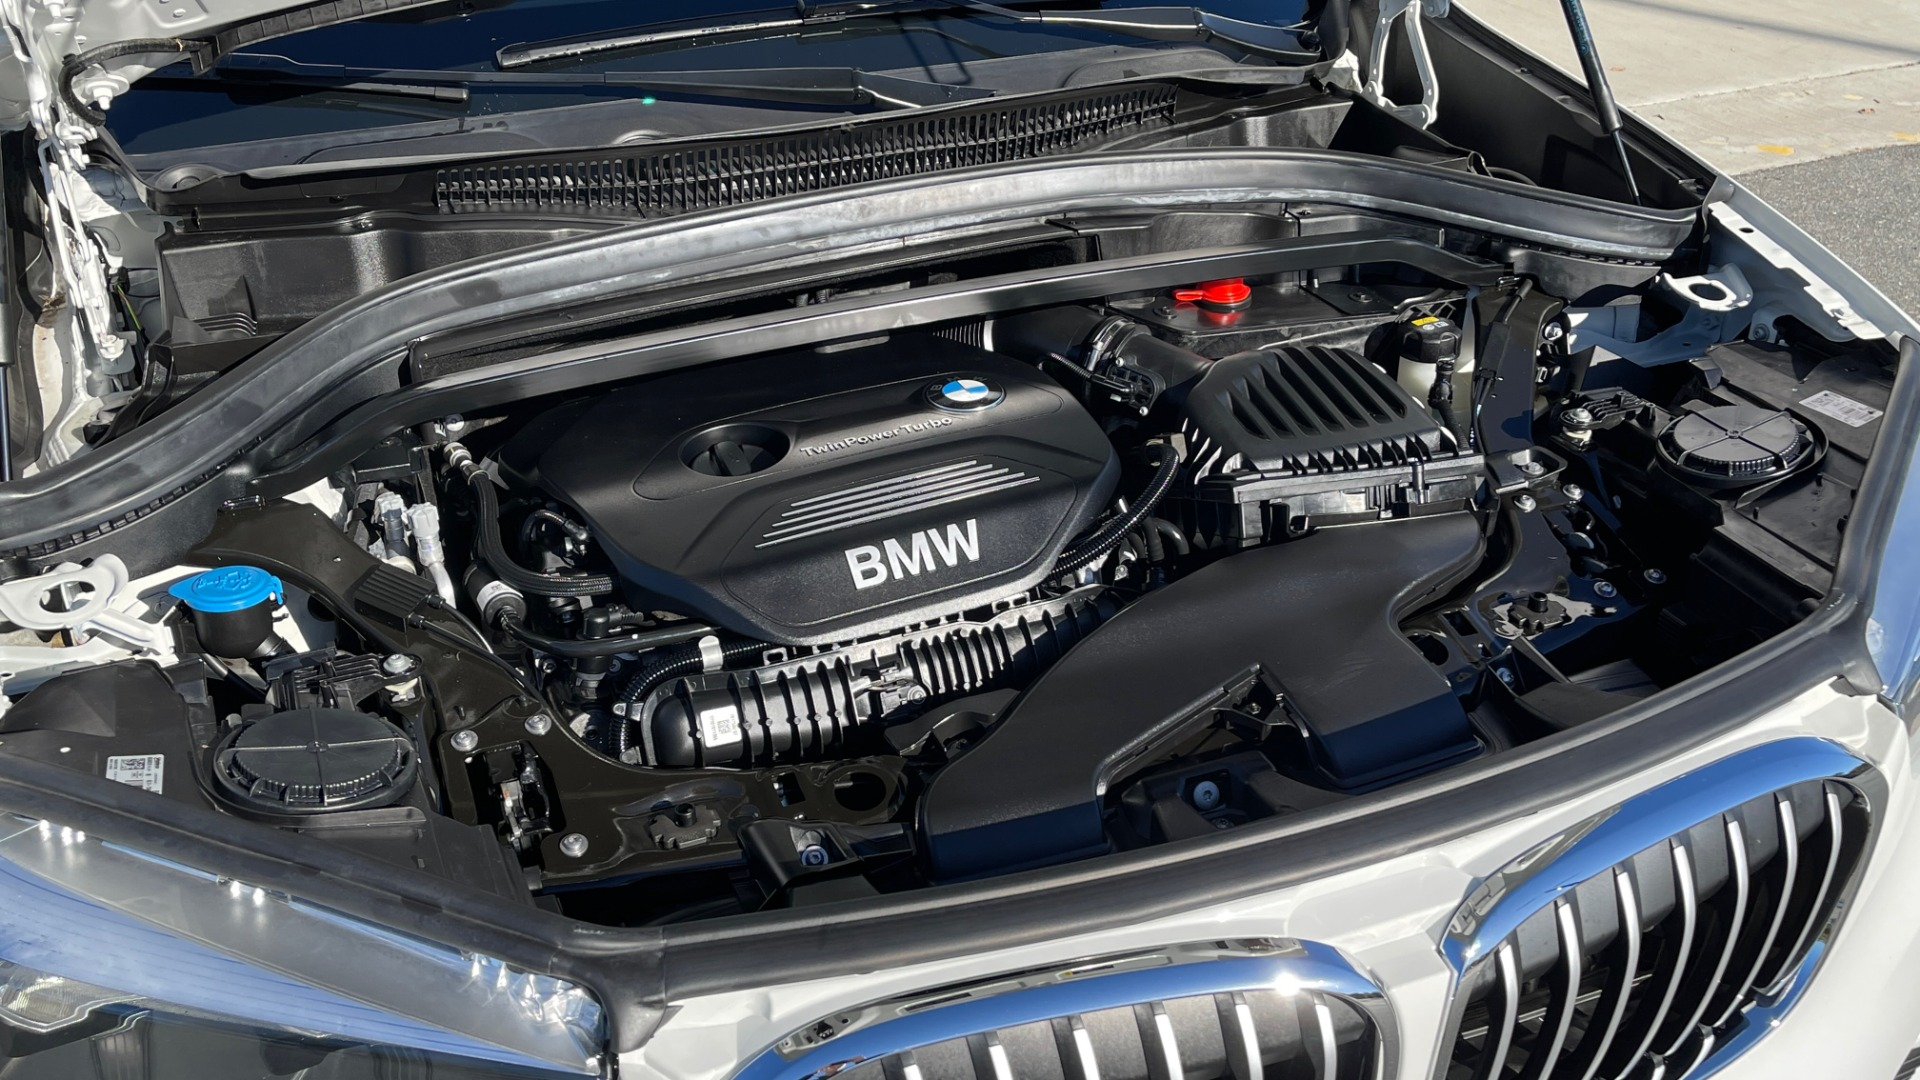 Used 2018 BMW X1 XDRIVE28I / CONV PKG / PANO-ROOF / PARK ASST / REARVIEW for sale $31,995 at Formula Imports in Charlotte NC 28227 8